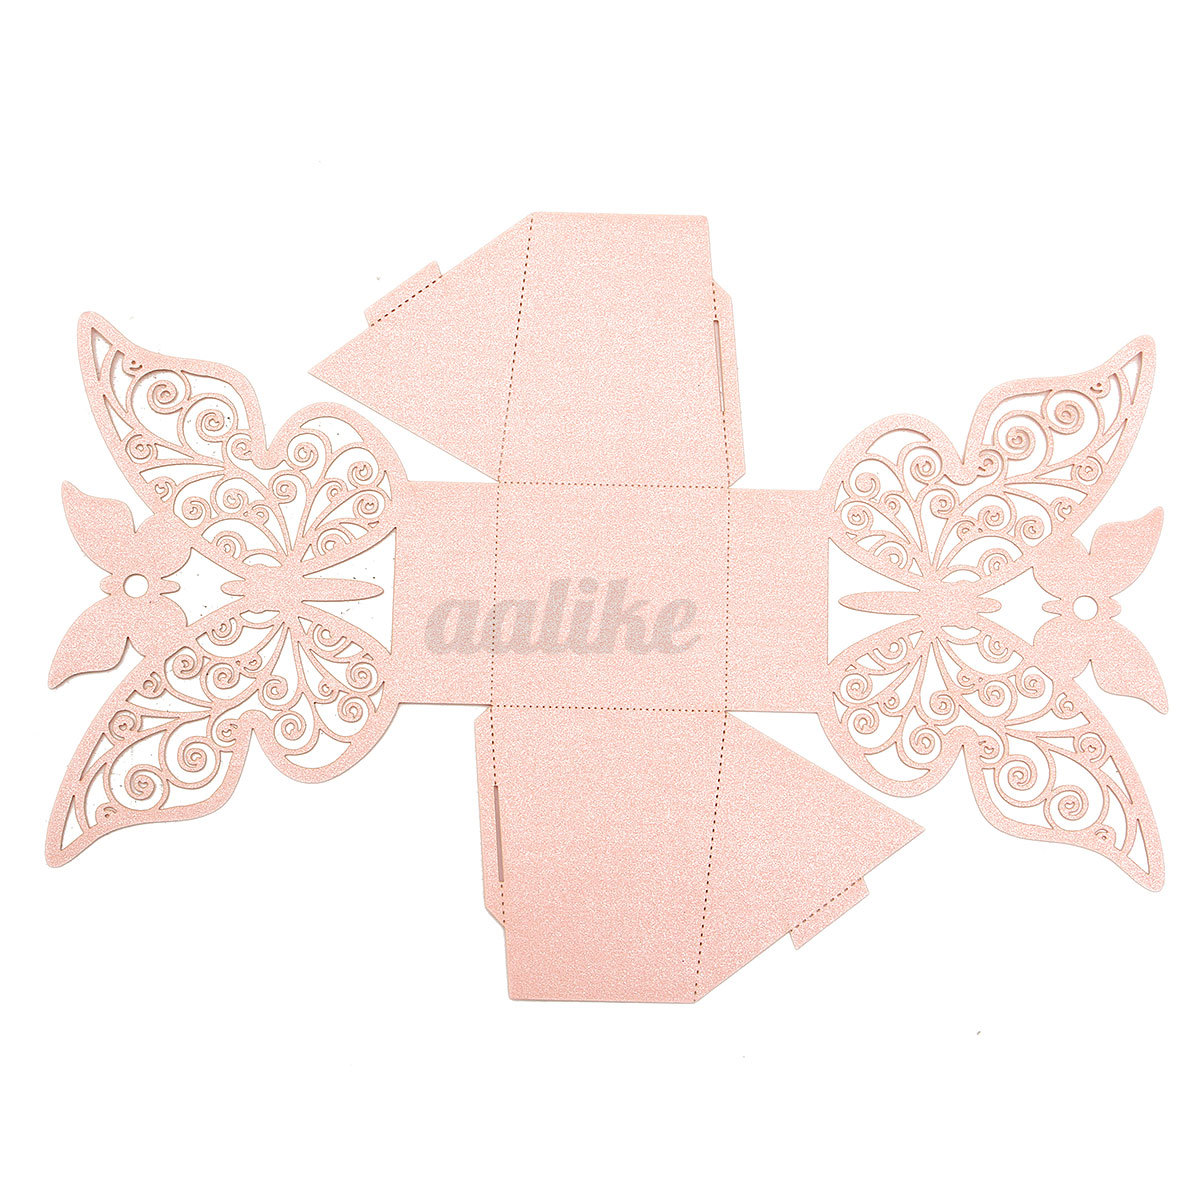 10 50 100X Paper Butterfly Wedding Cake Candy Box Party